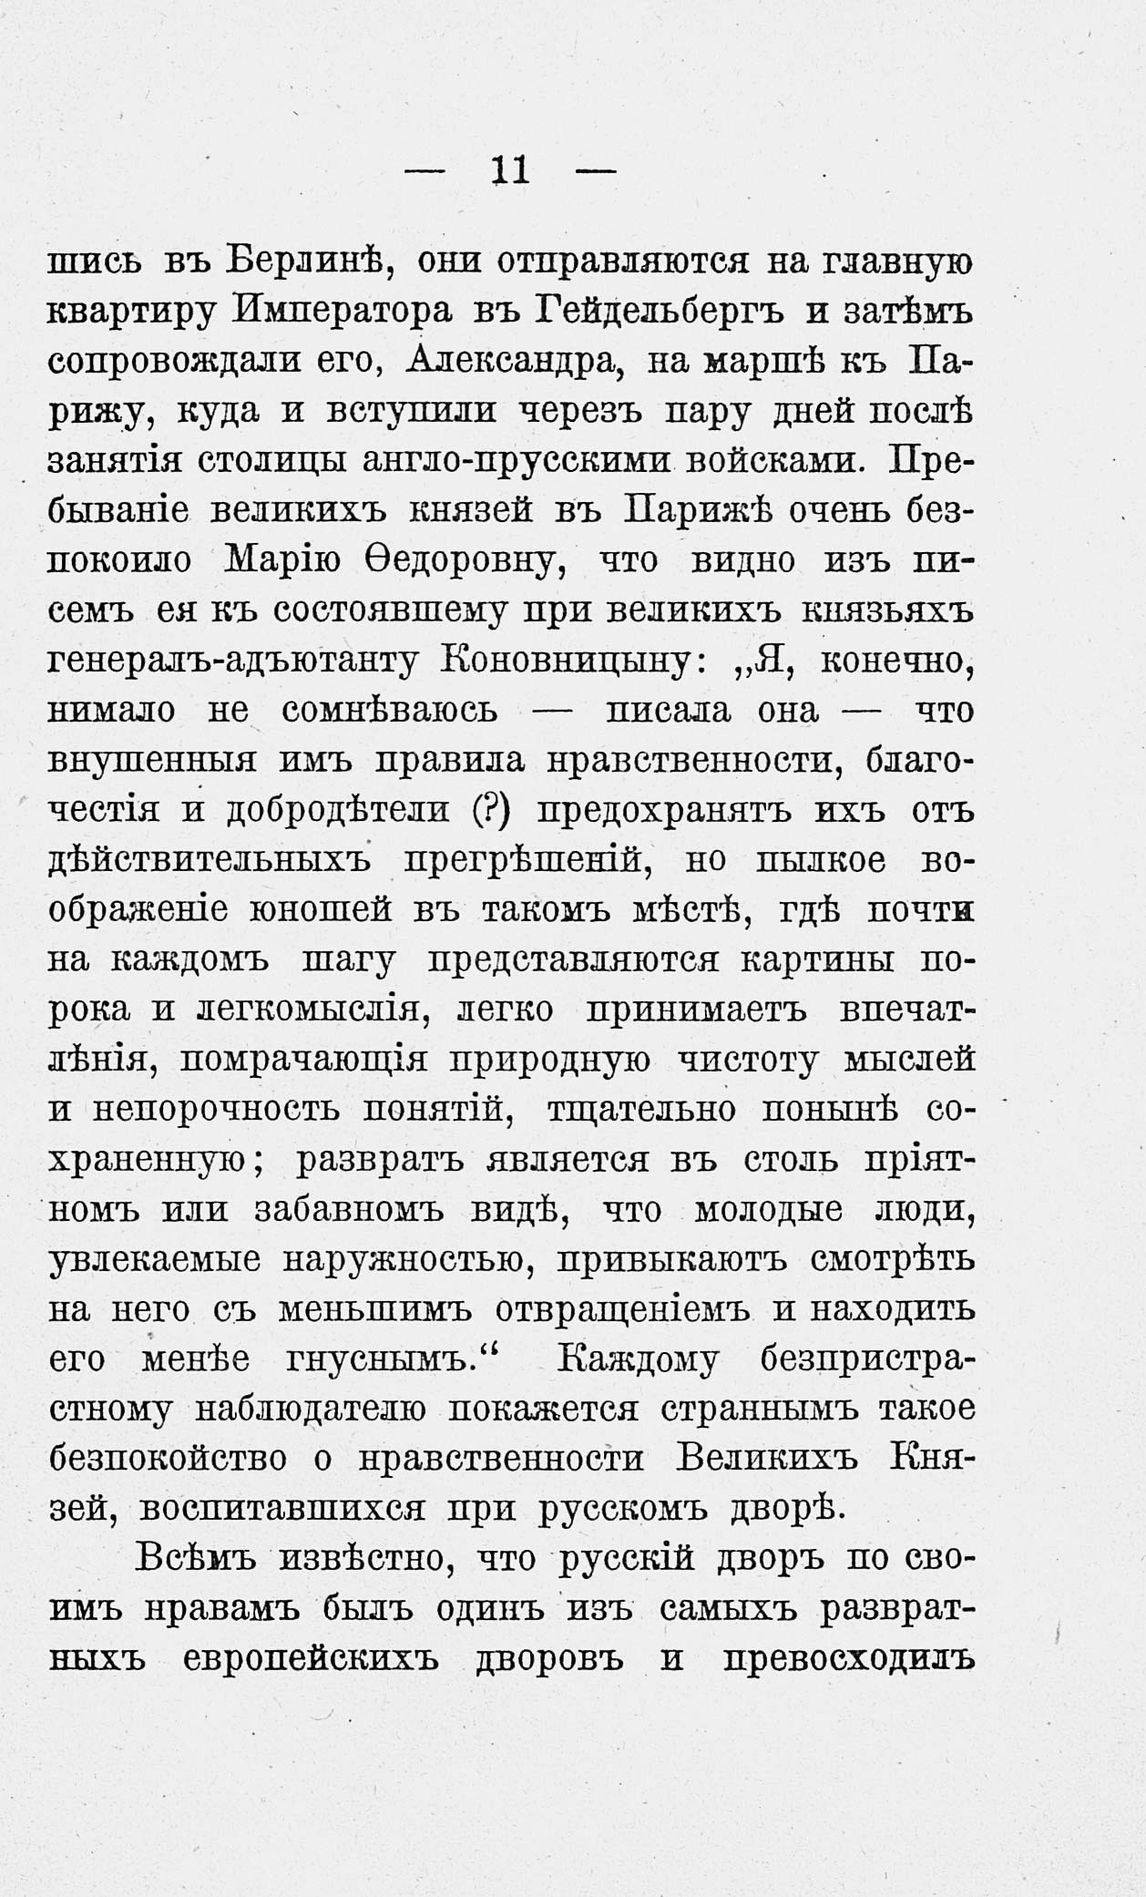 http://elib.shpl.ru/pages/627482/zooms/7